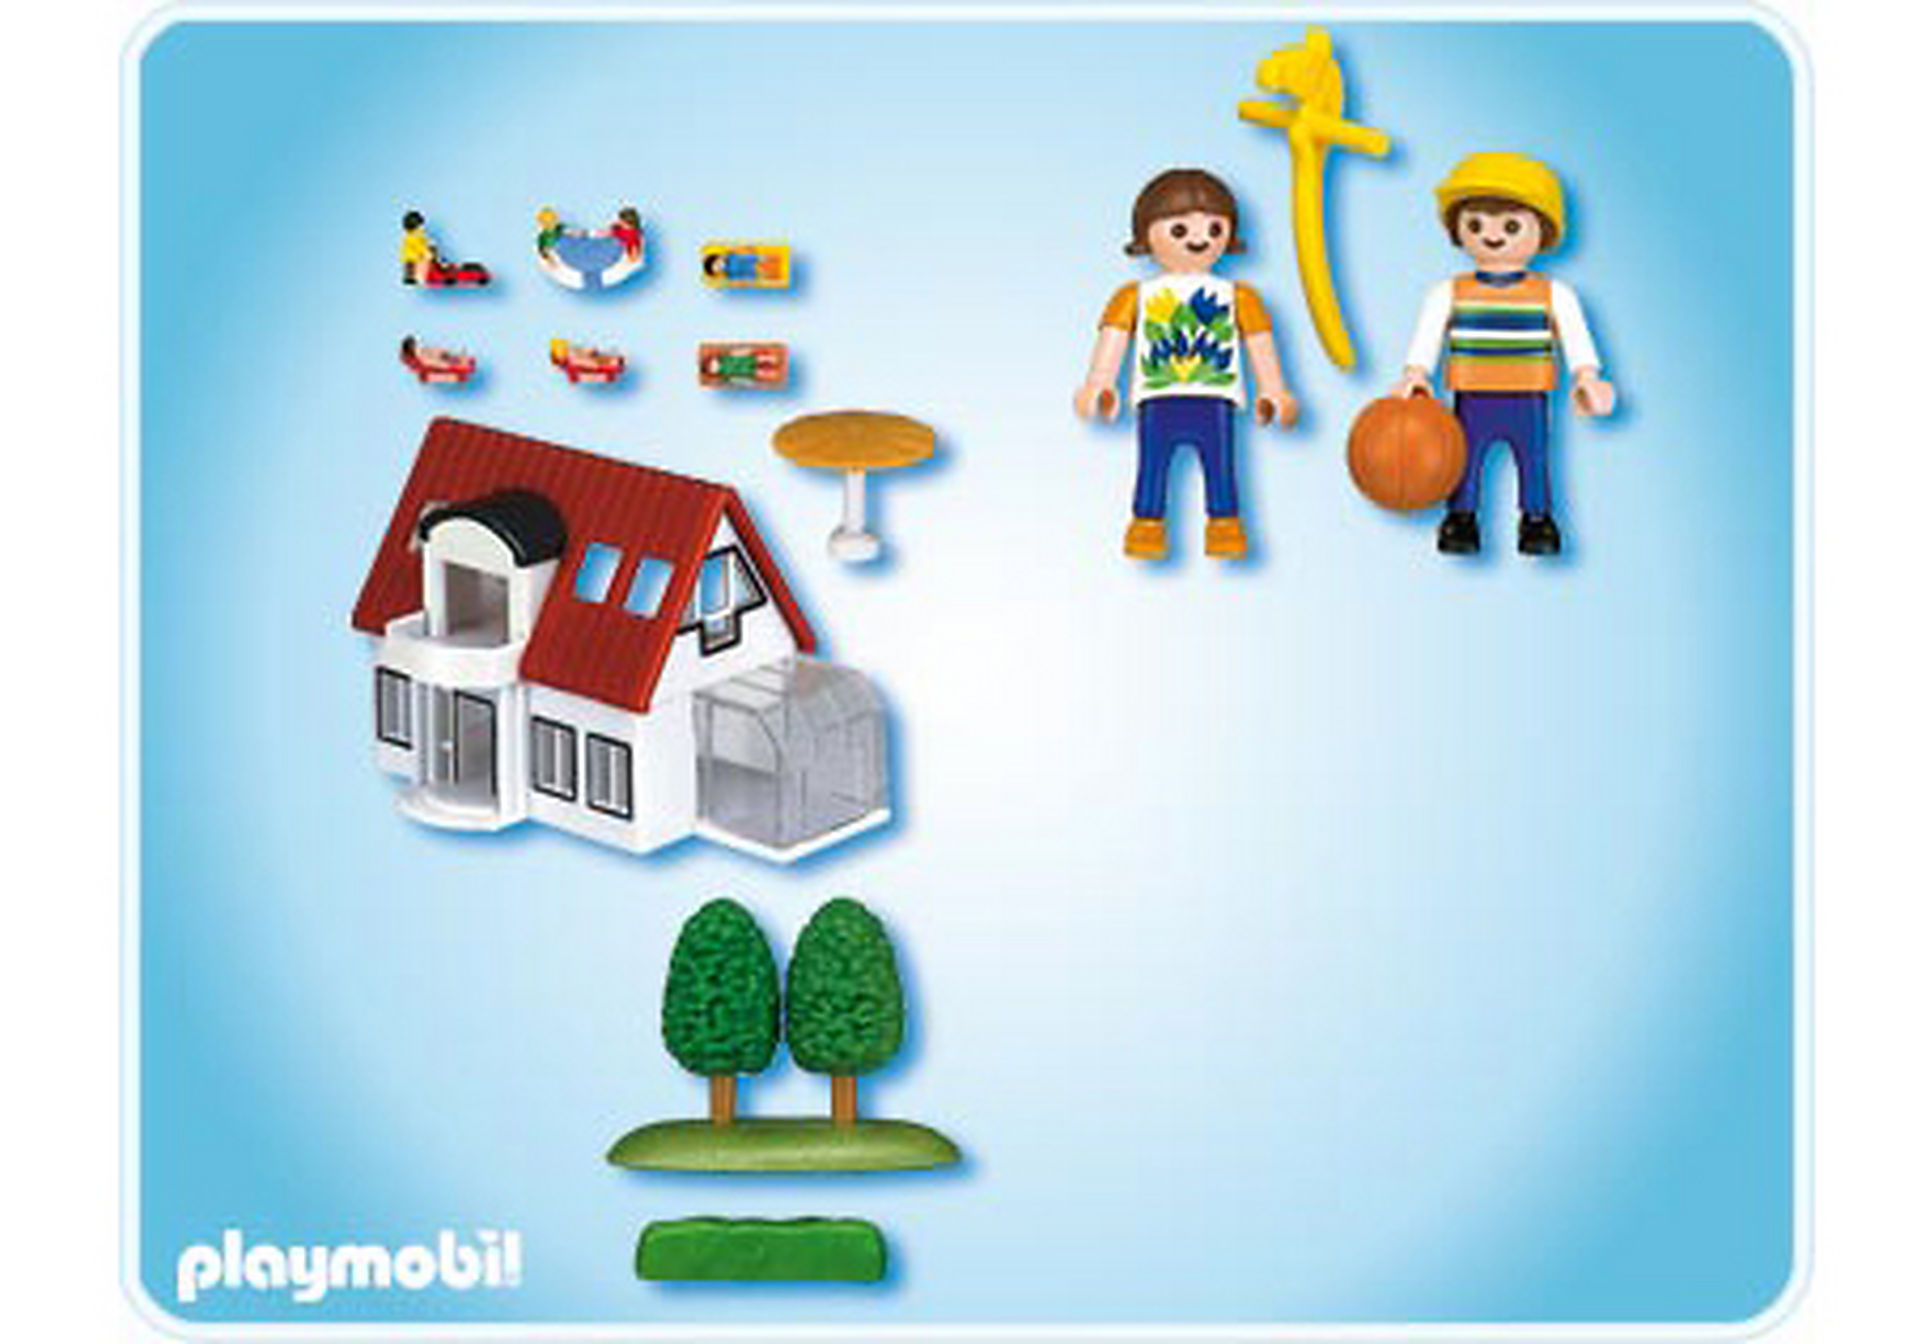 4335-A Micro PLAYMOBIL Villa moderne zoom image2